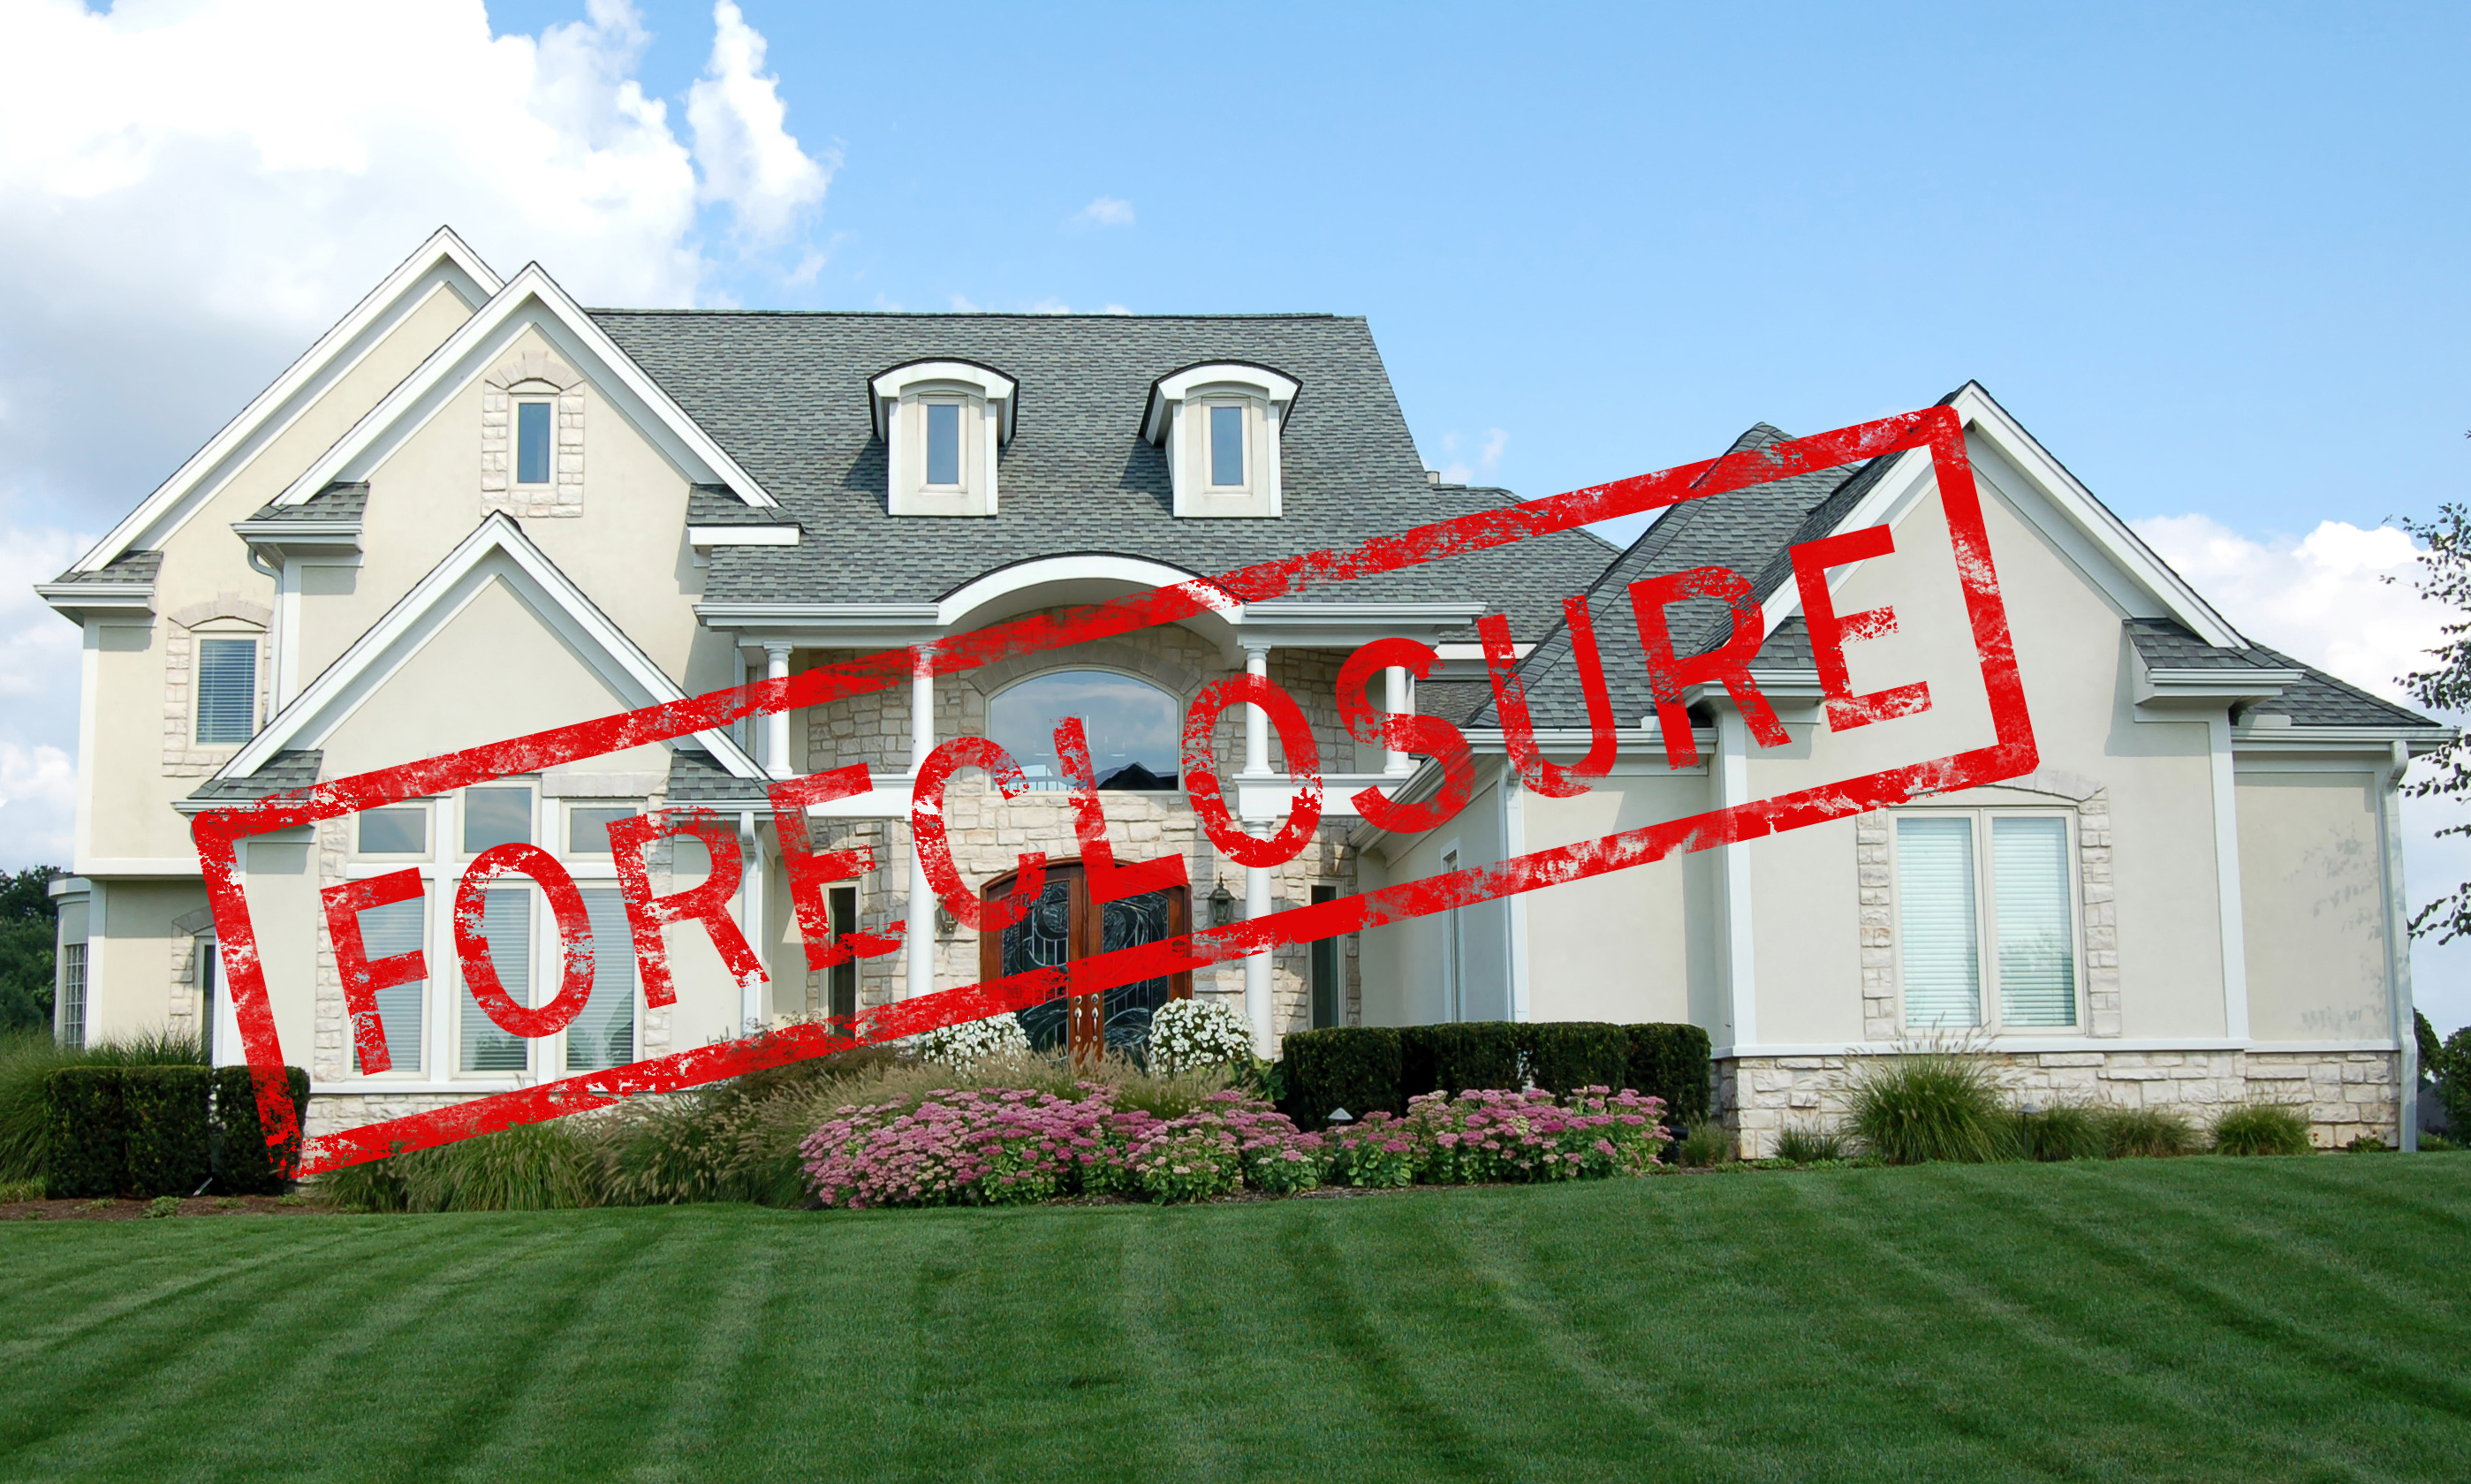 Call Barnstable/Plymouth Appraisal Services when you need appraisals pertaining to Barnstable foreclosures